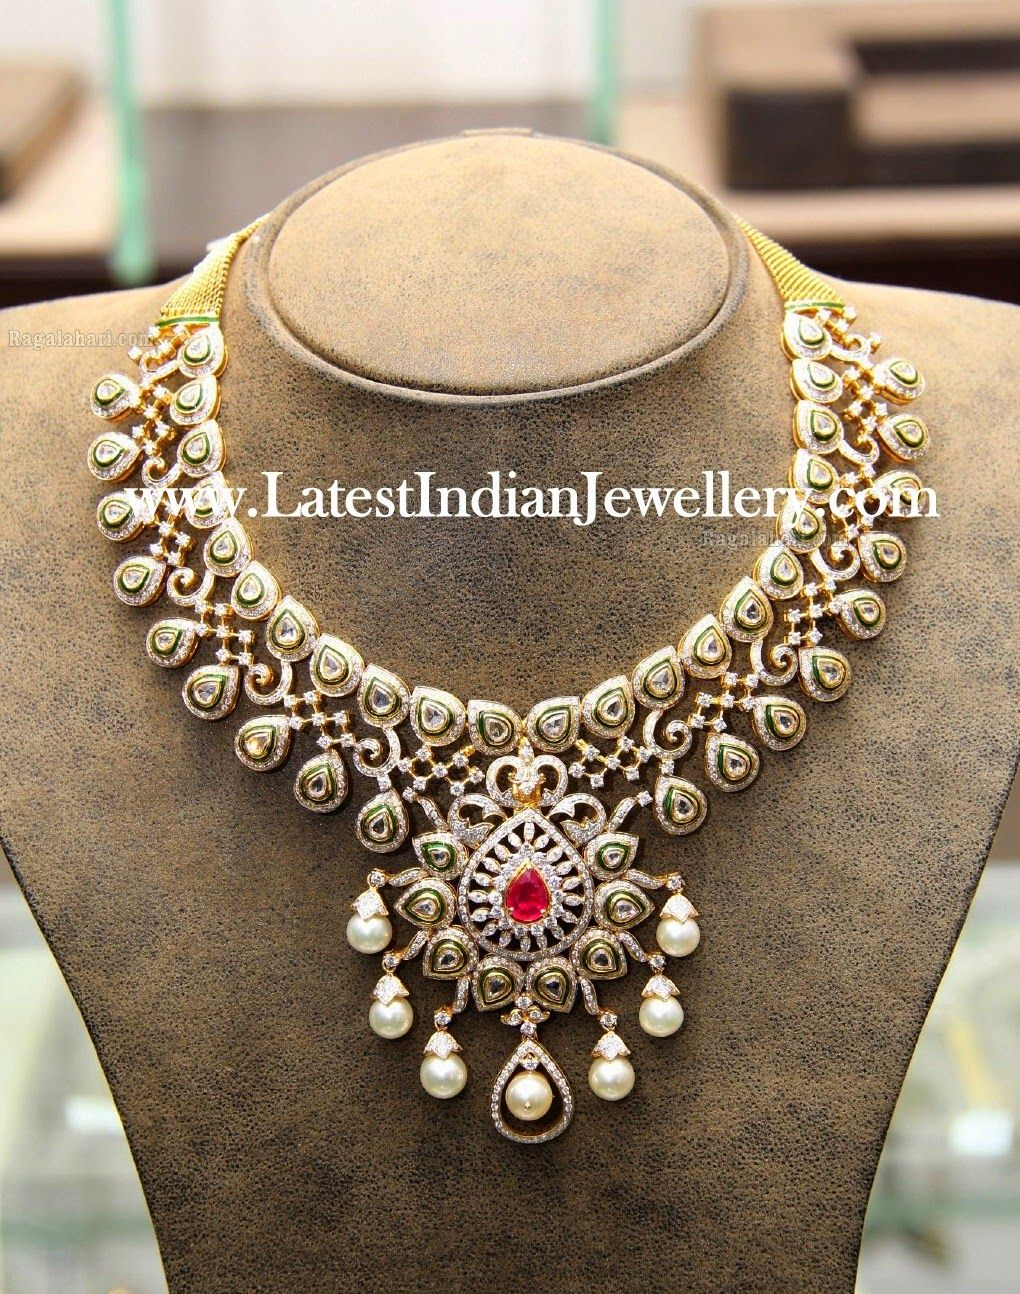 set and changeable jewellery designs necklace pin diamond stone stones indian latest bridal